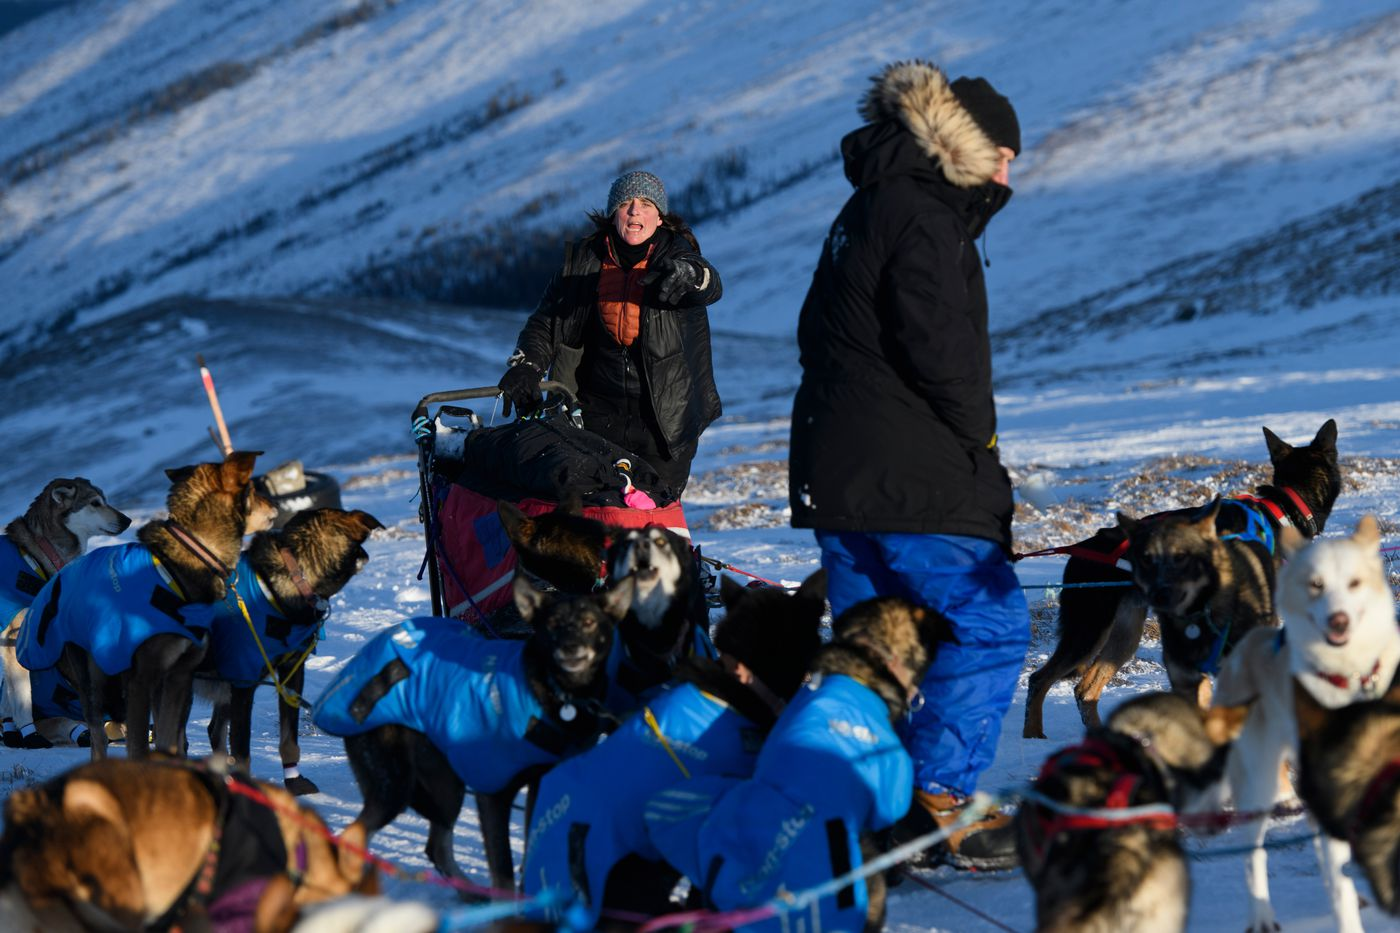 Michelle Phillips, of Tagish, Yukon, maneuvers around Hans Gatt at Eagle Summit. Yukon Quest International Sled Dog Race frontrunners passed checkpoints along the Steese Highway on February 10, 2019. (Marc Lester / ADN)